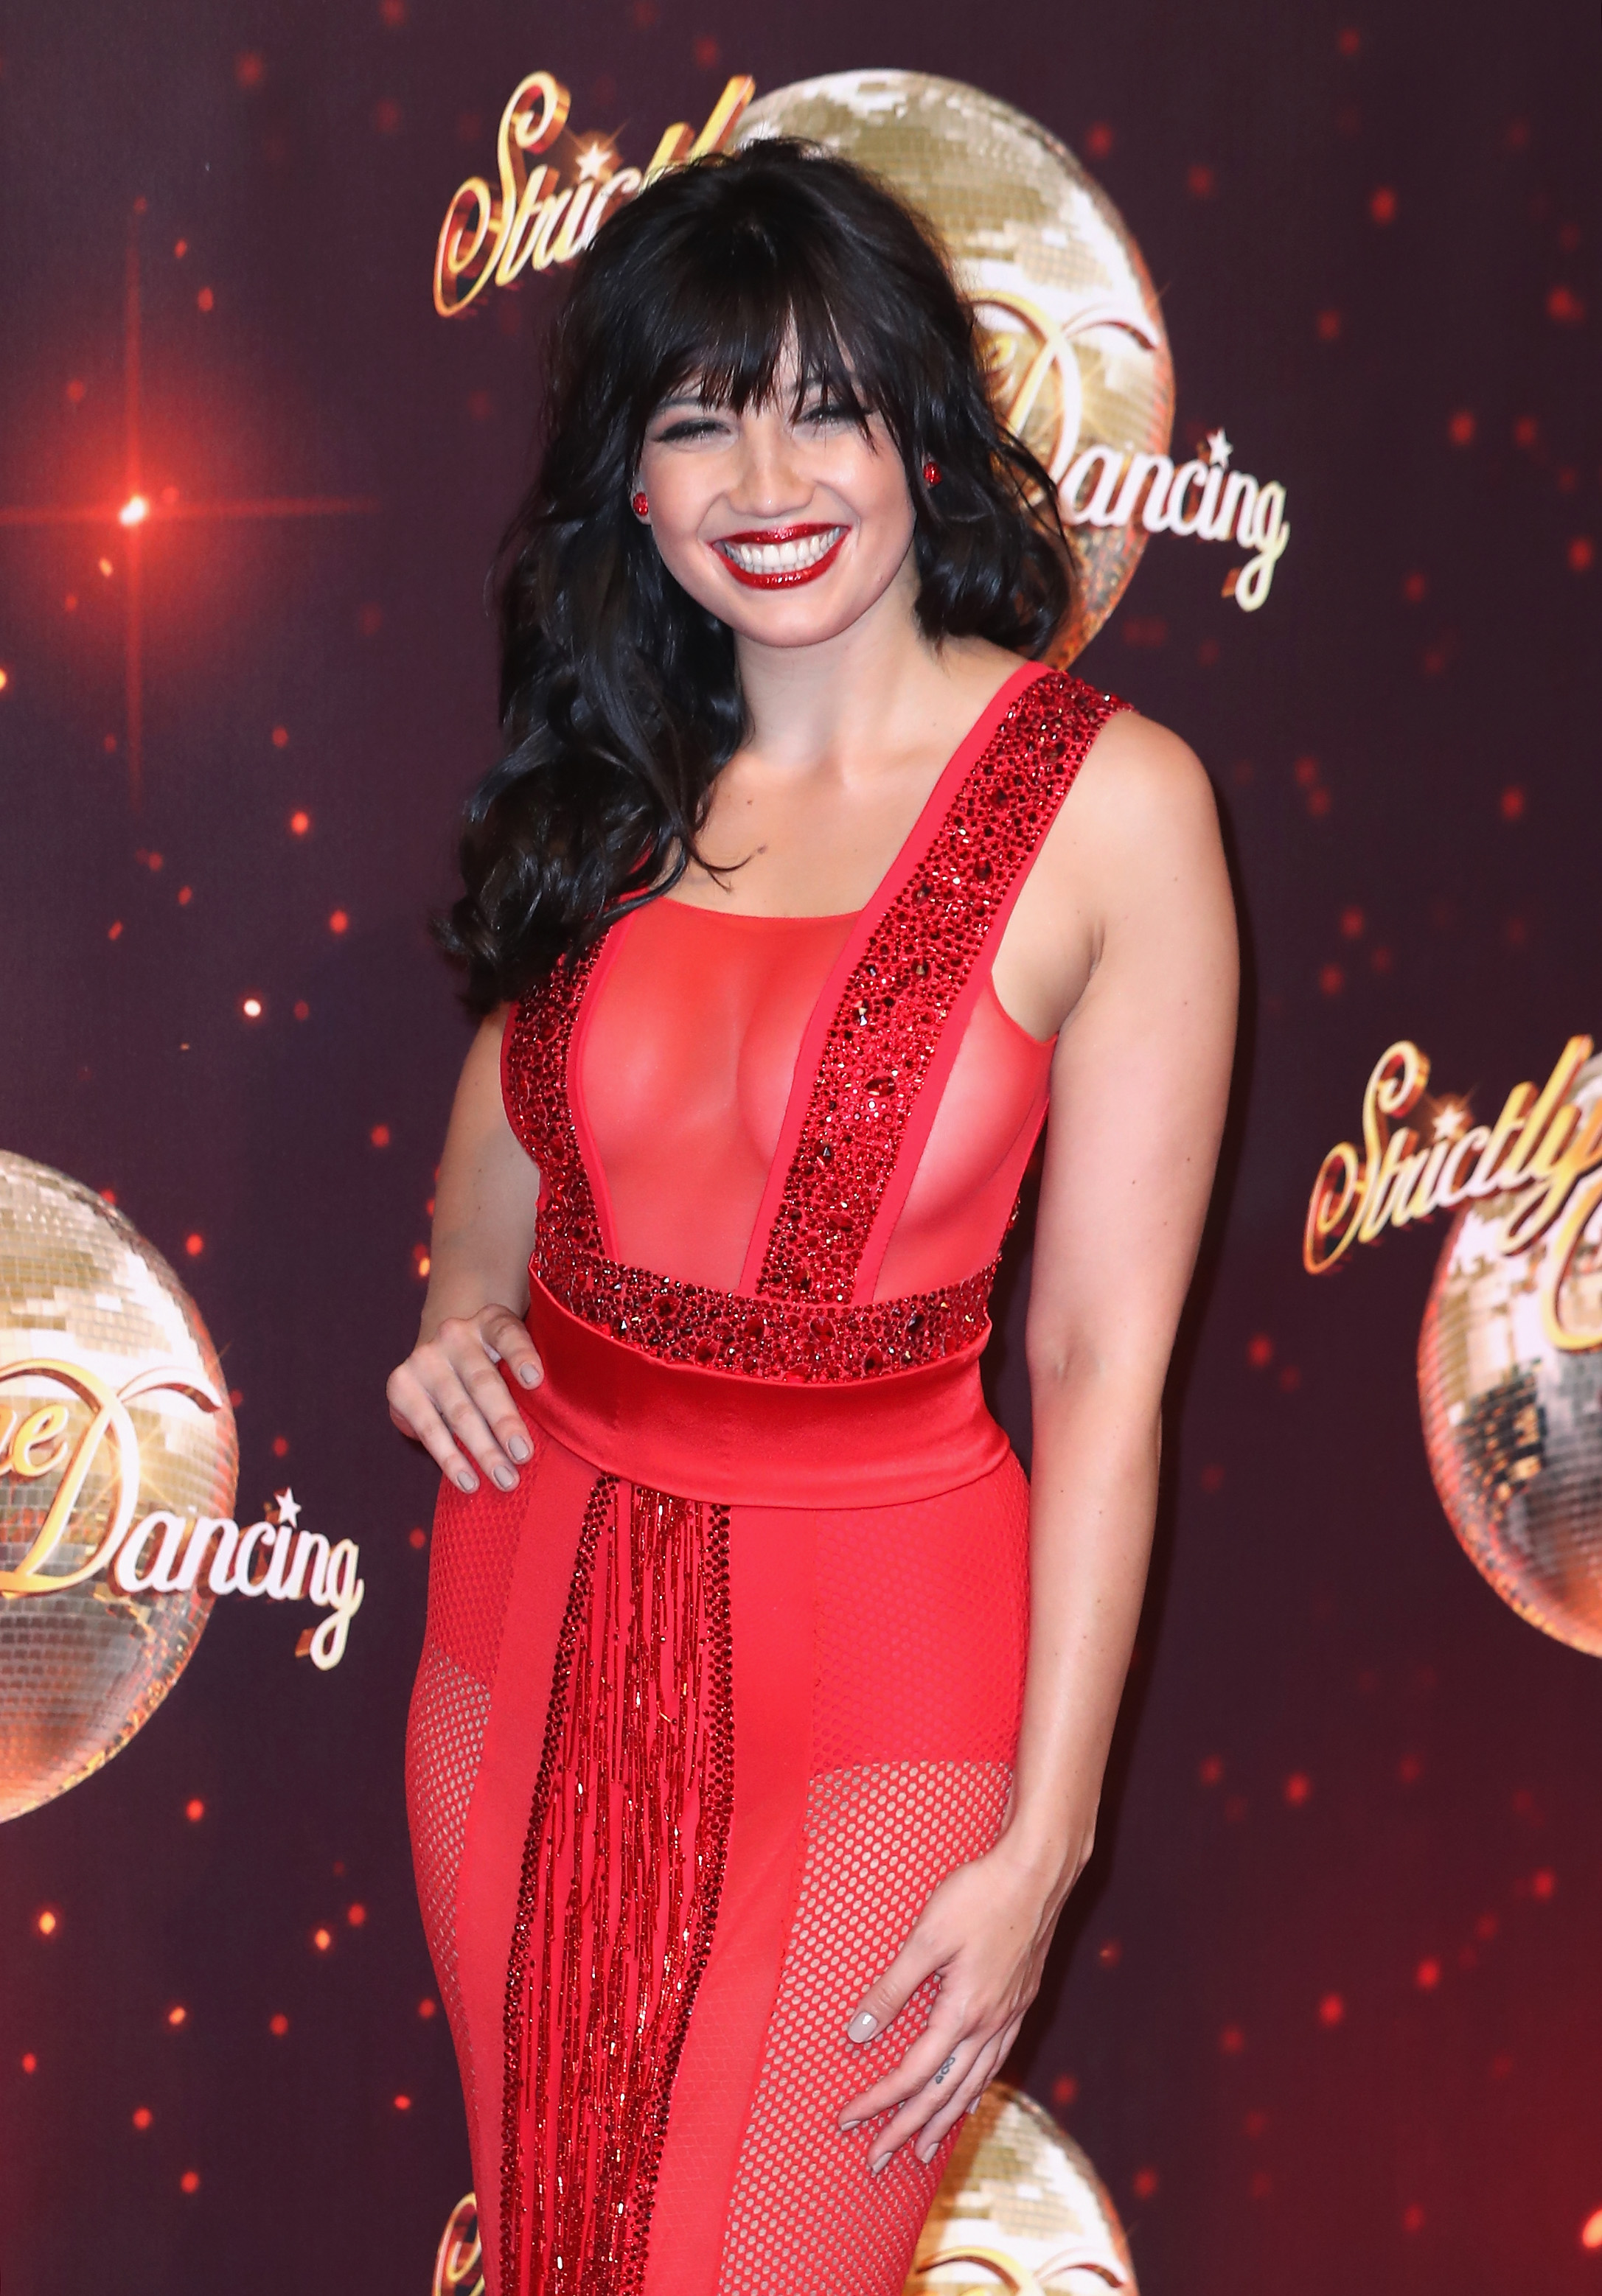 daisy1 Daisy Lowe Reveals Shed Be Up For A Threesome With Fellow Strictly Contestants